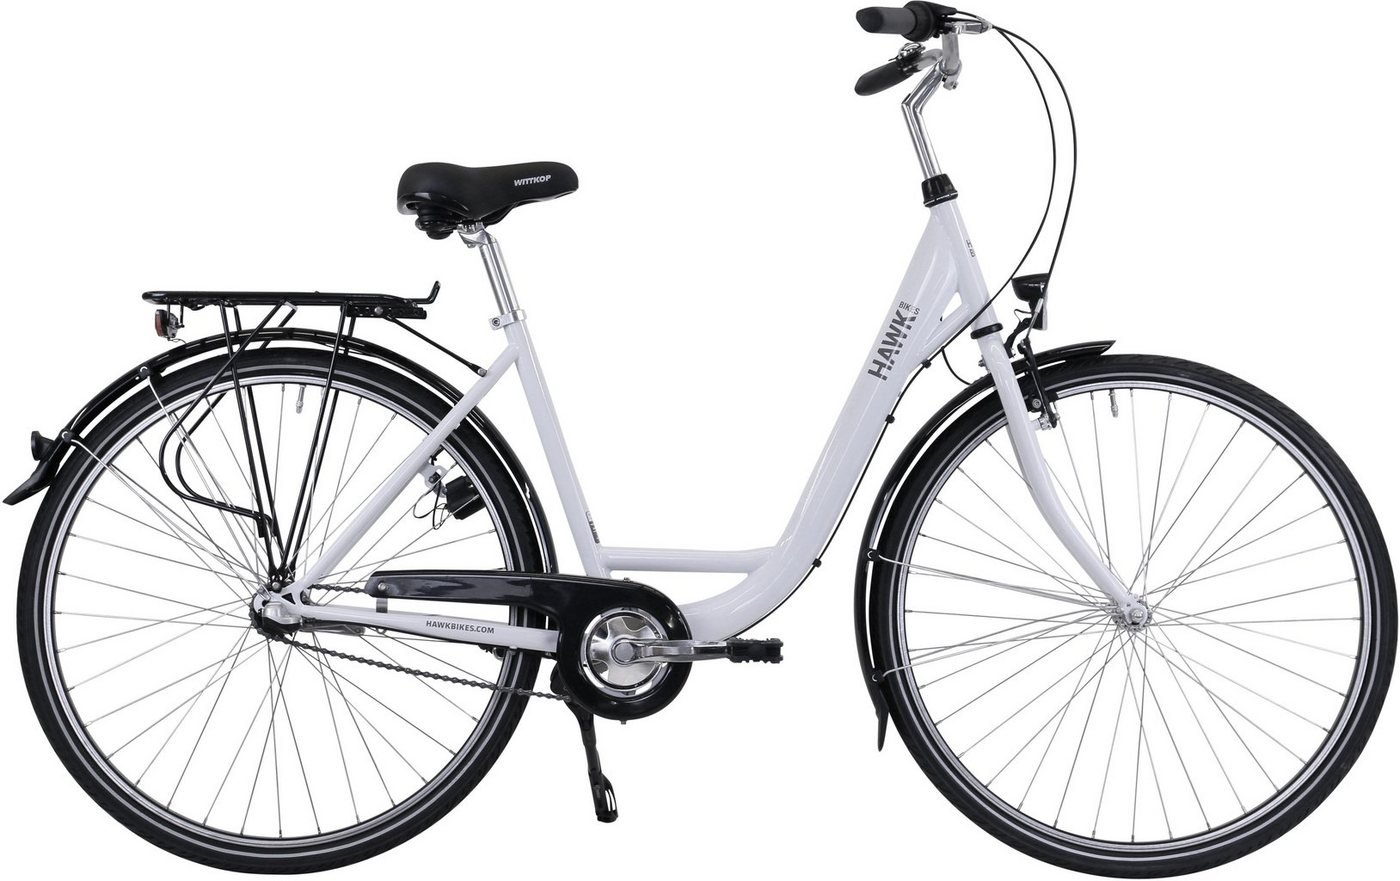 HAWK Bikes Cityrad »HAWK City Wave Premium White«, 3 Gang Shimano Nexus Schaltwerk von HAWK Bikes